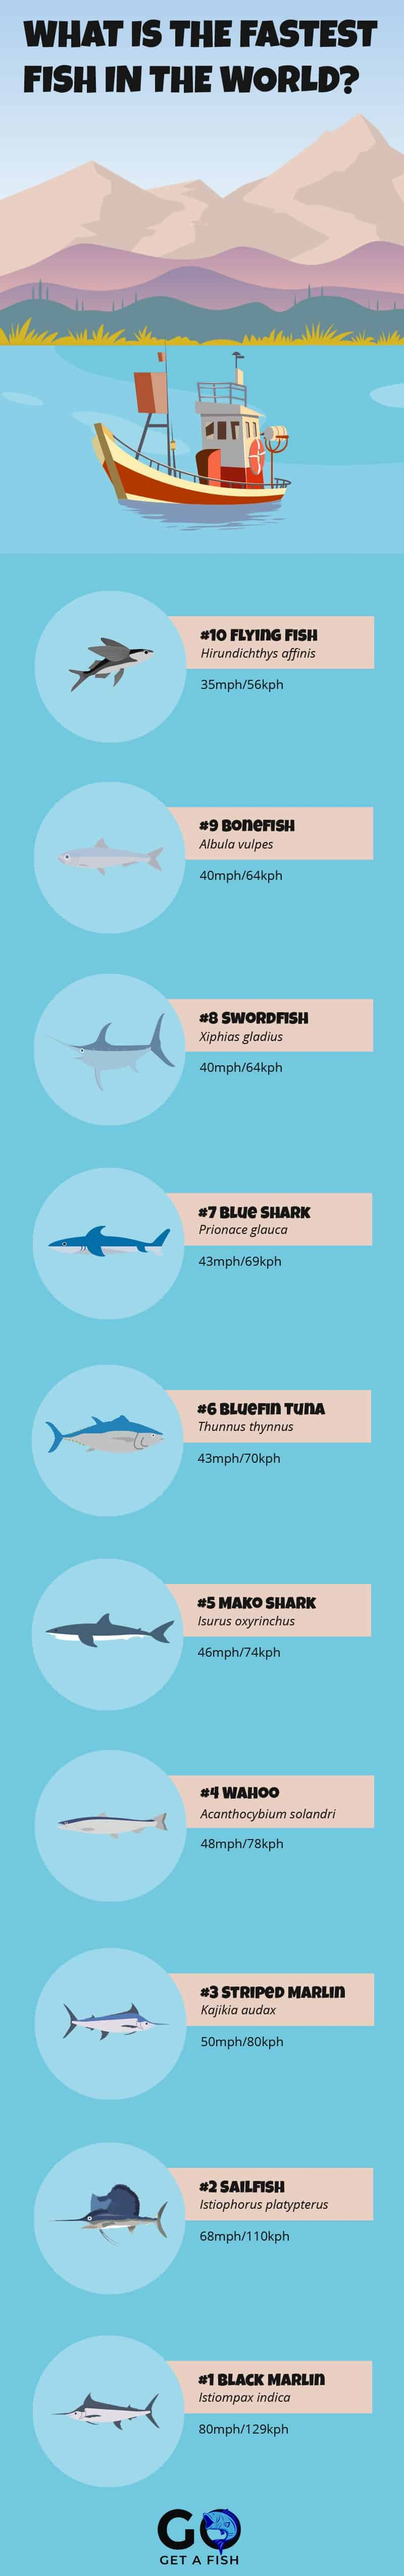 10 Fastest Fish In The World Go Get A Fish